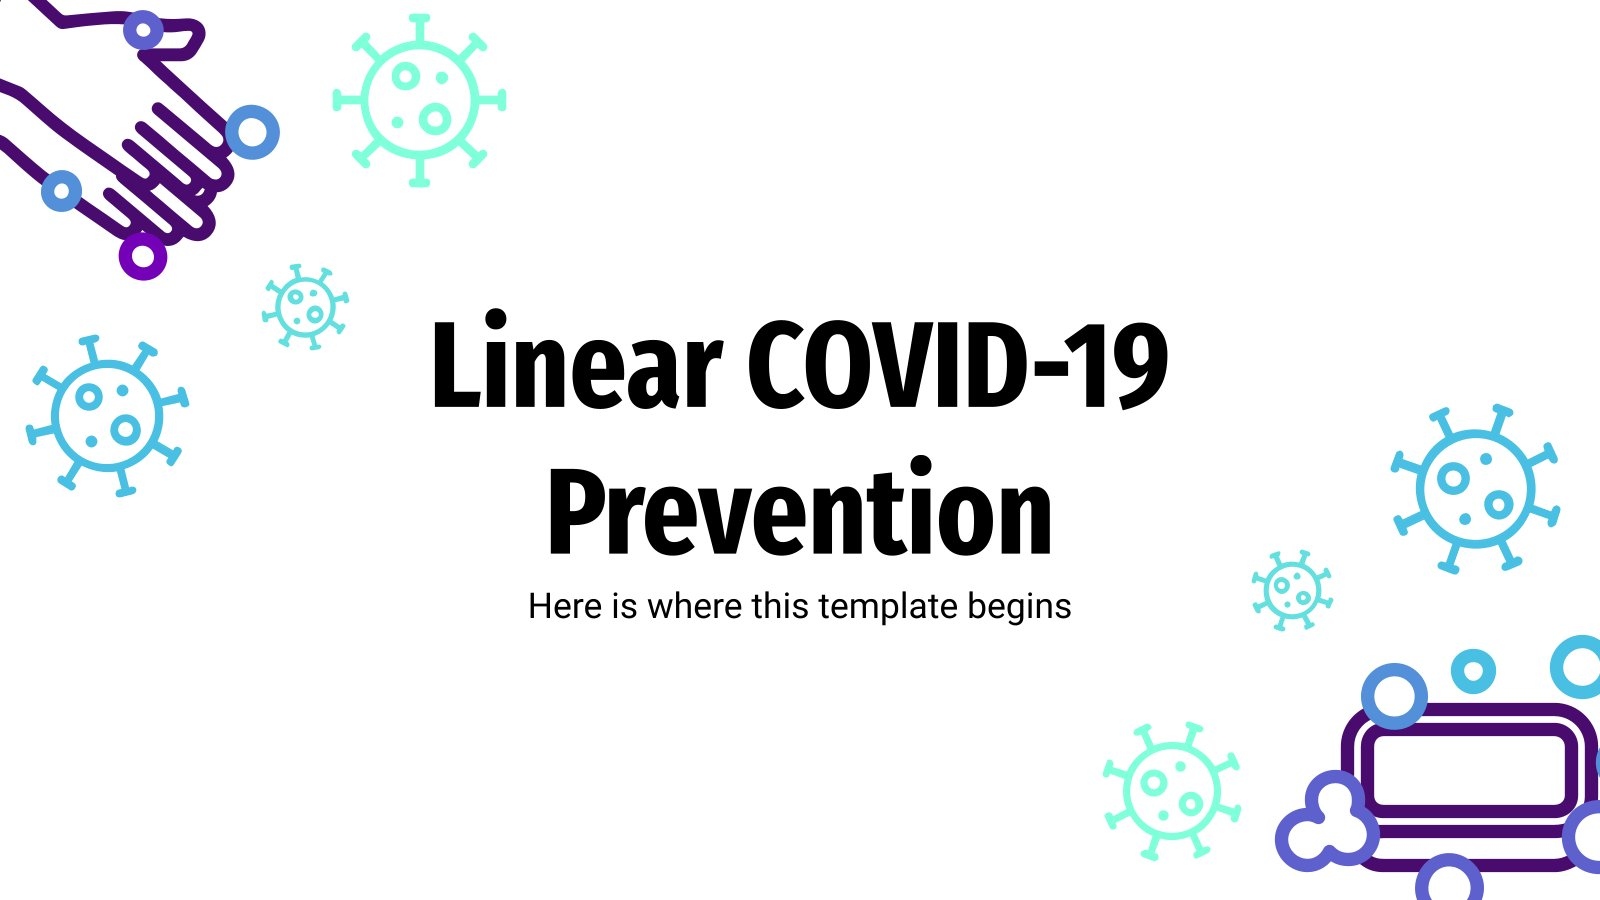 Linear COVID-19 Prevention presentation template